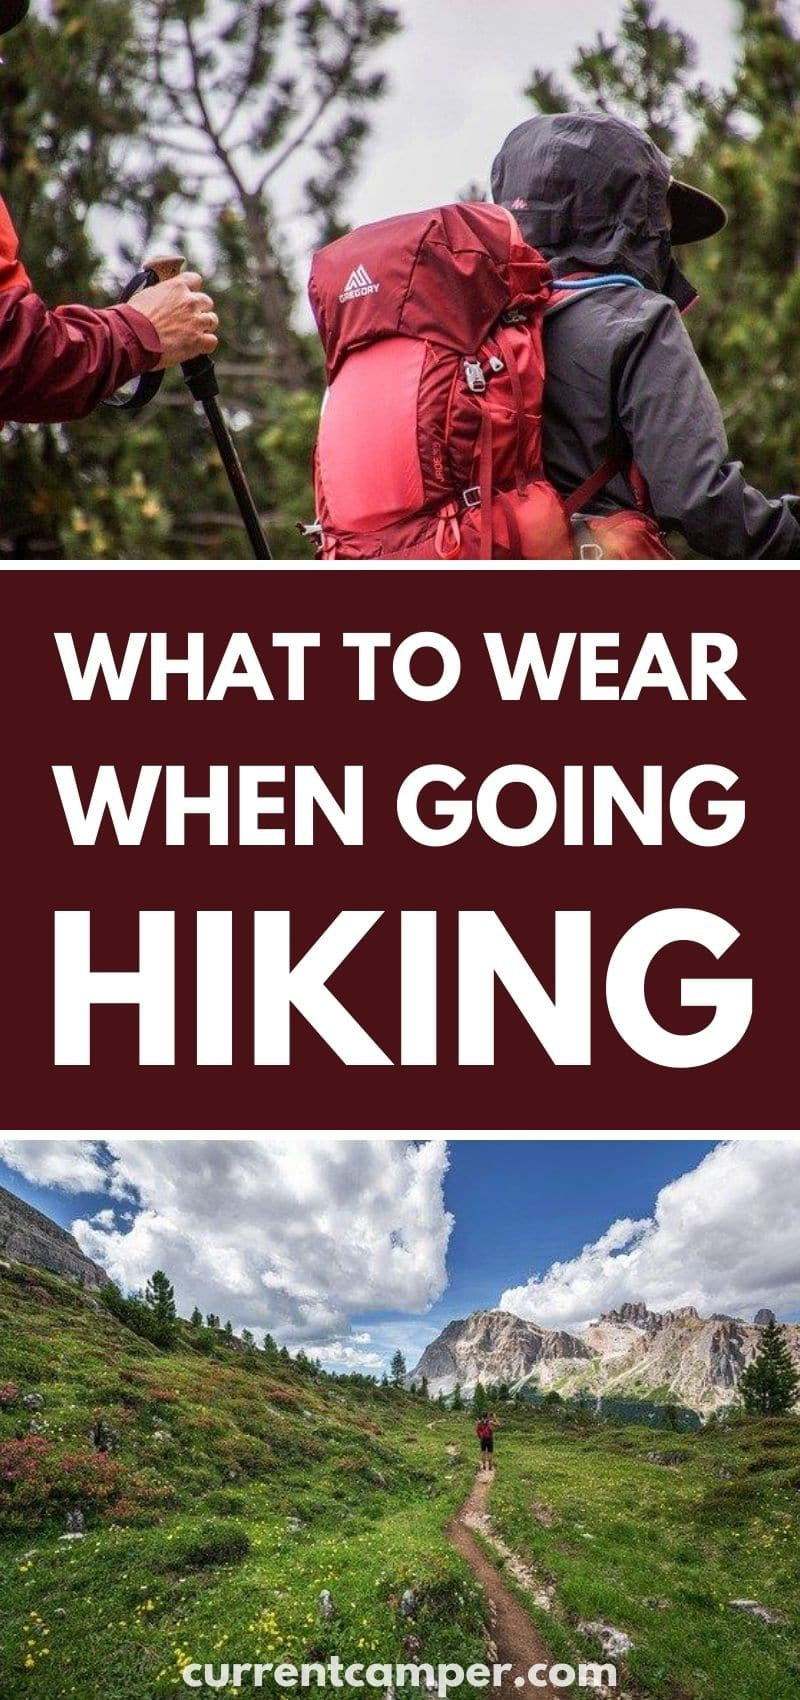 #hiking #hike hiking tips #camp camping tips #camping #nature #wilderness travel